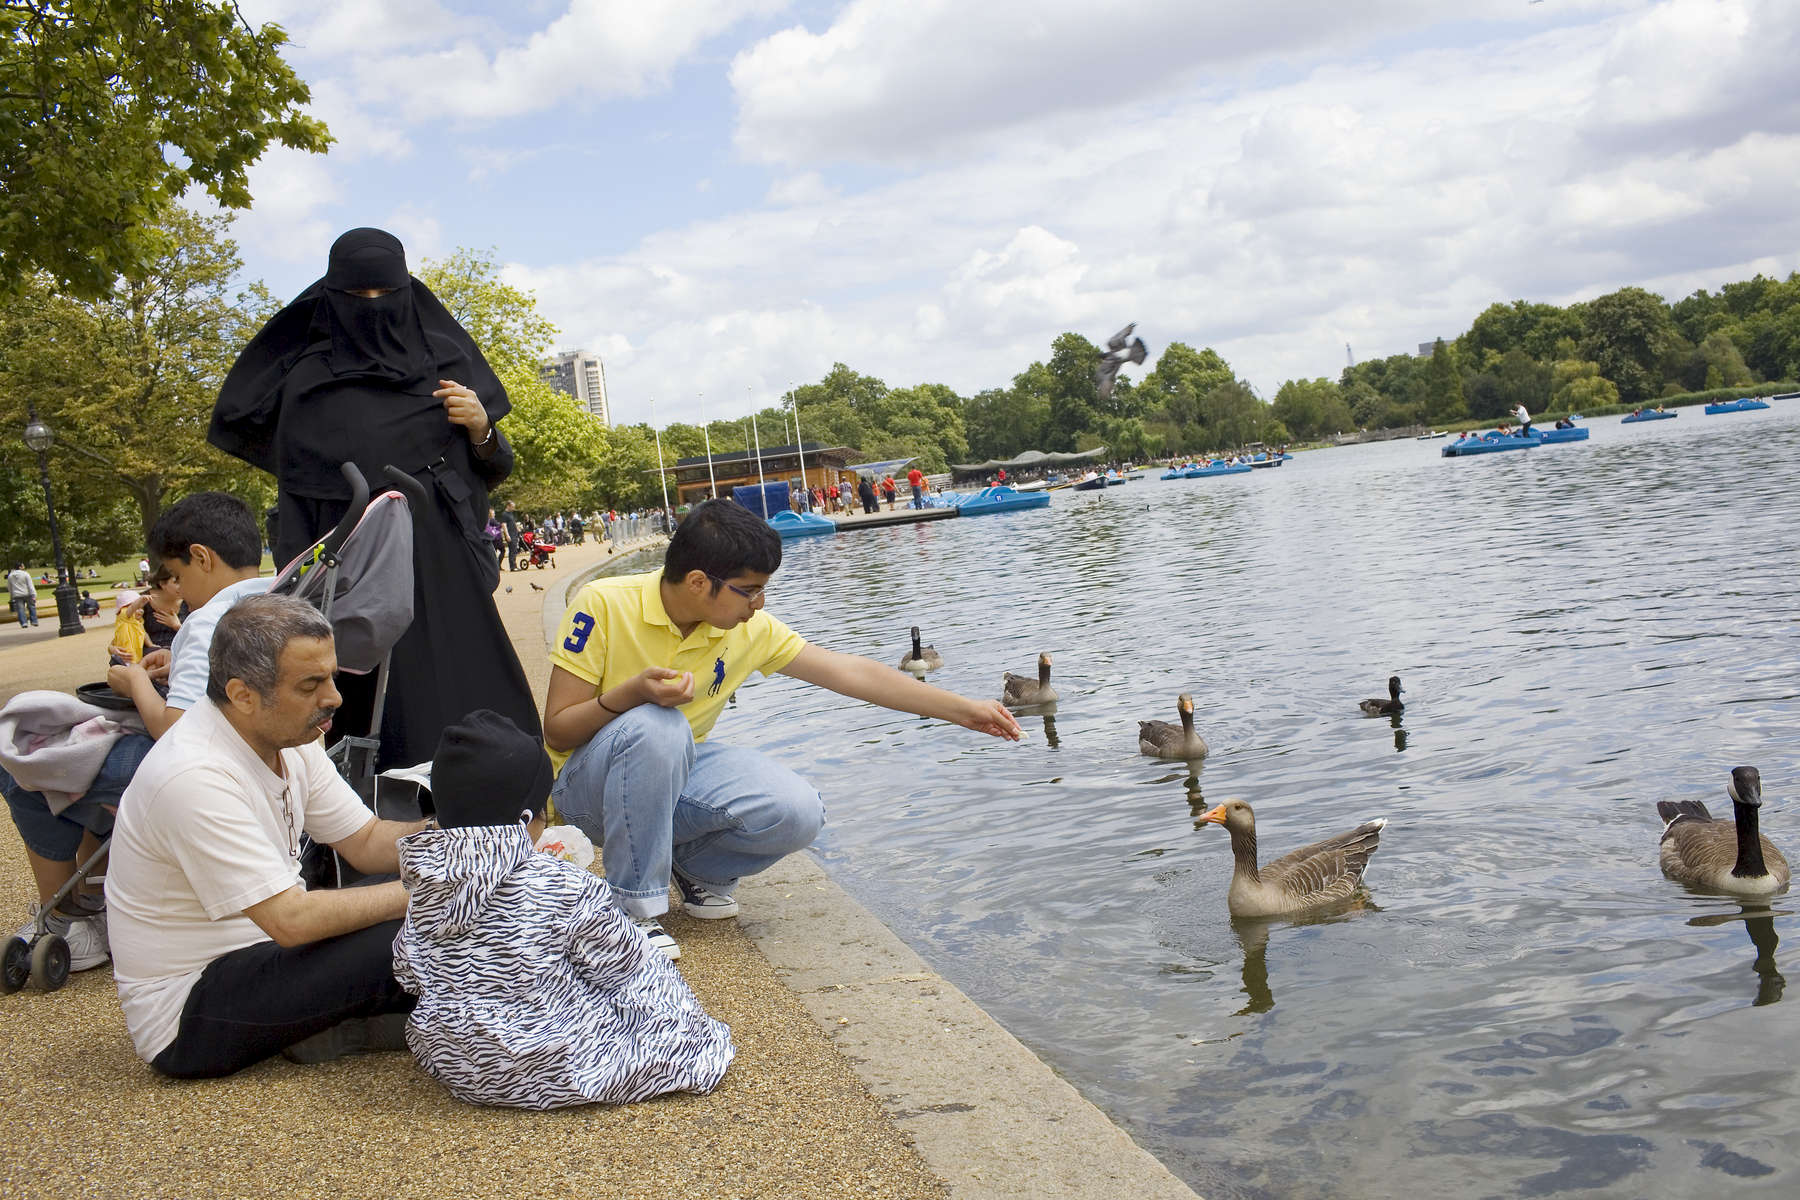 An Arab family feed the birds on the Serpentine Lake in Hyde Park.Arabs have been visiting London for centuries and around 300,000 Arabs have chosen to make the capital their home and a further half a million throughout the UK. The number swells significantly from visitors during the summer. Saudi Arabians spend the most on property in London choosing Belgravia, Kenington, Knightsbridge and Holland Park. Arab culture continues to increase in visibility throughout the capital as integration into this most transient of city's continues.©Peter Dench/Reportage by Getty Images